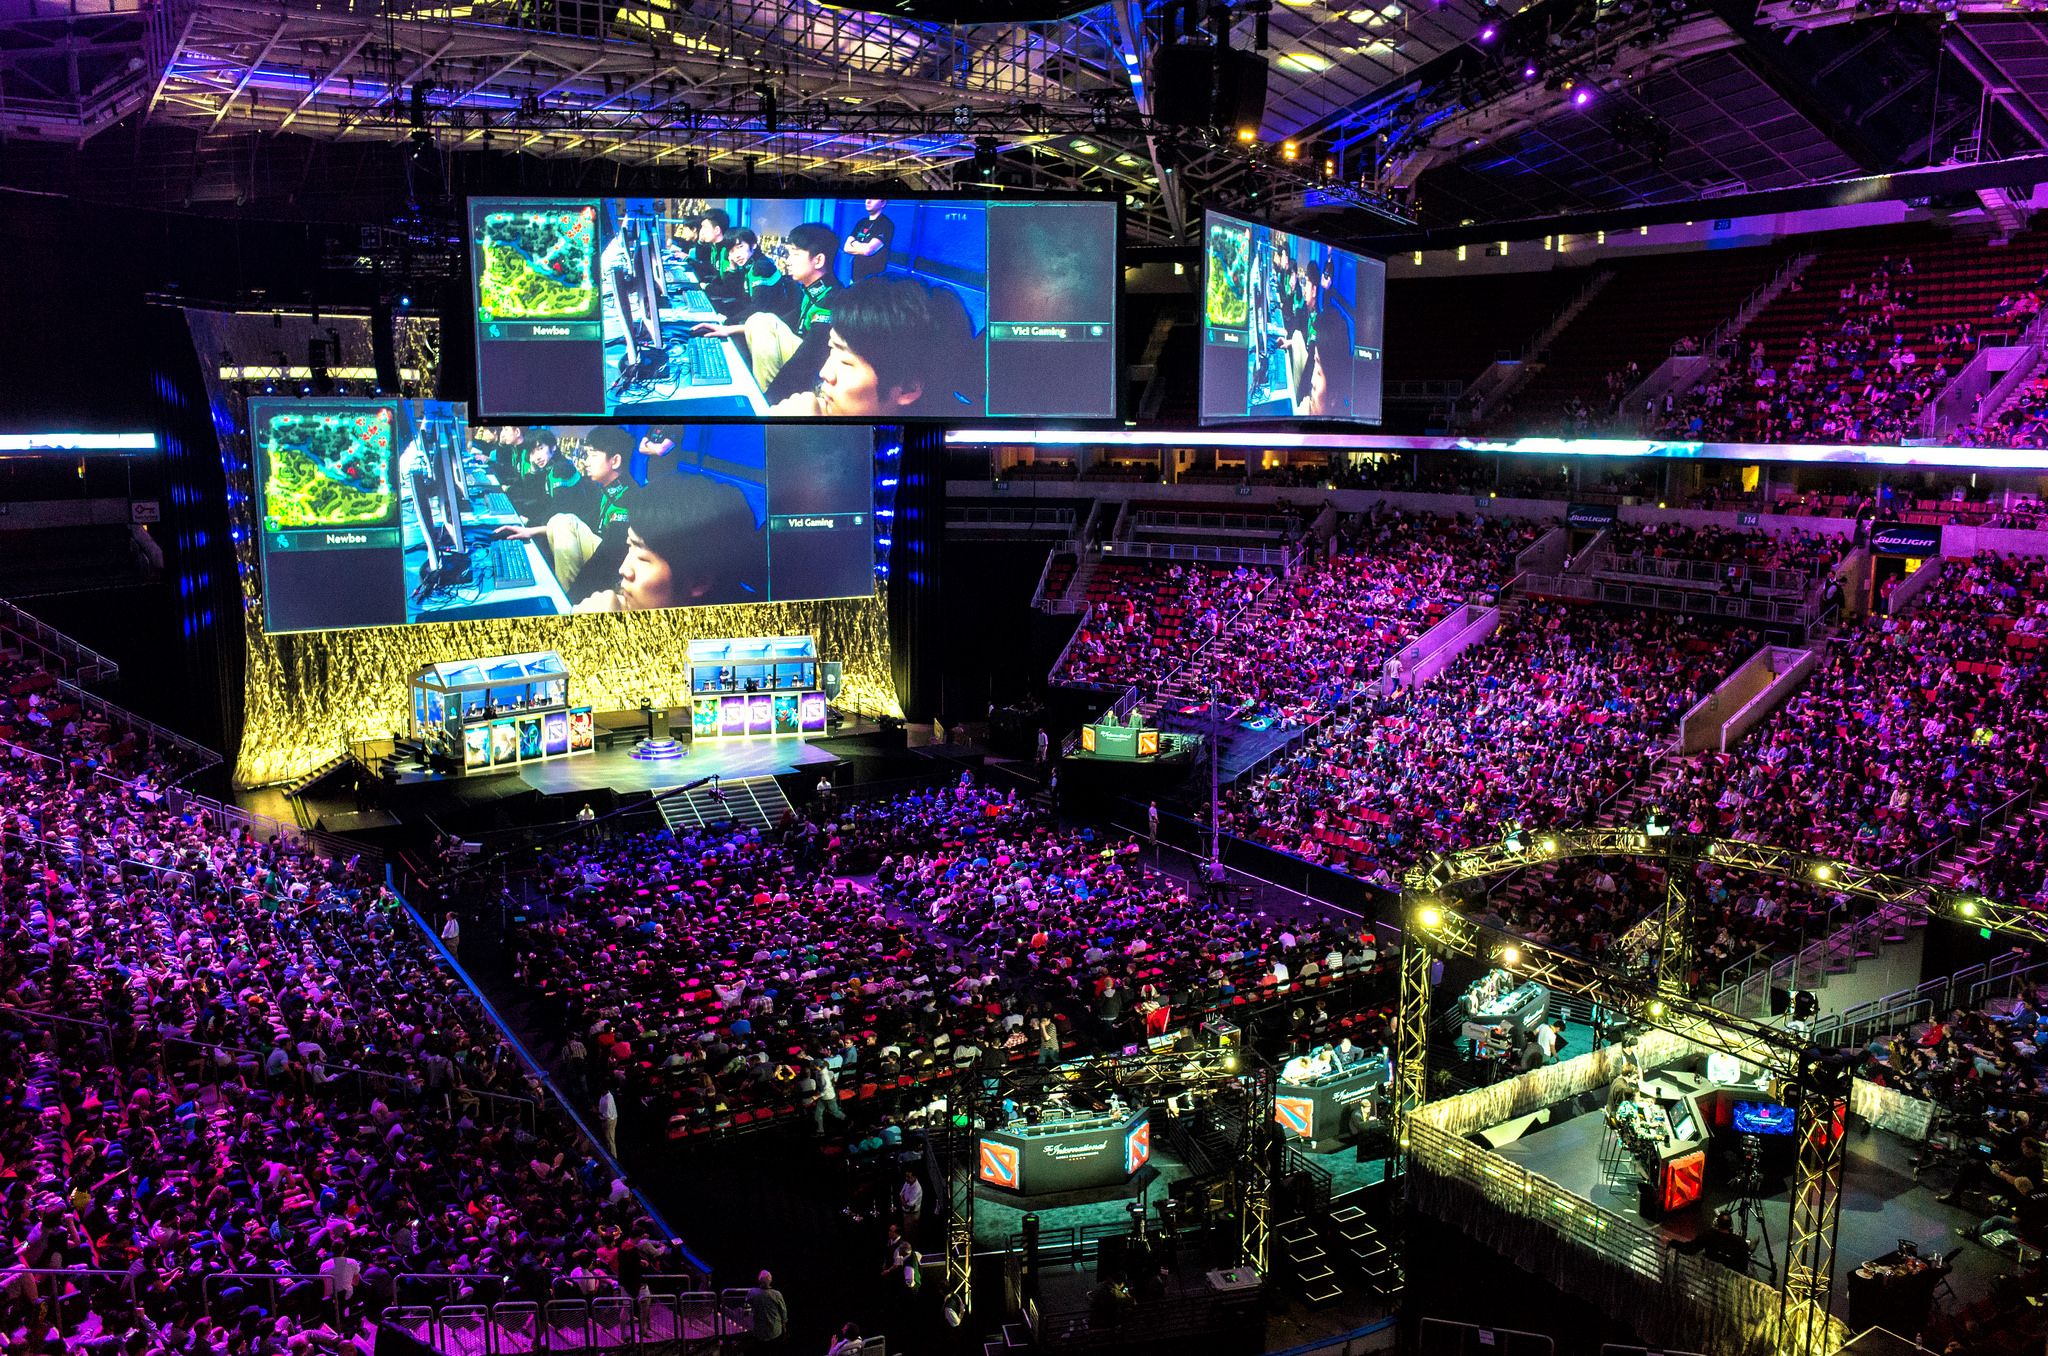 Prize pool of the global 2019 exceeded $30 million